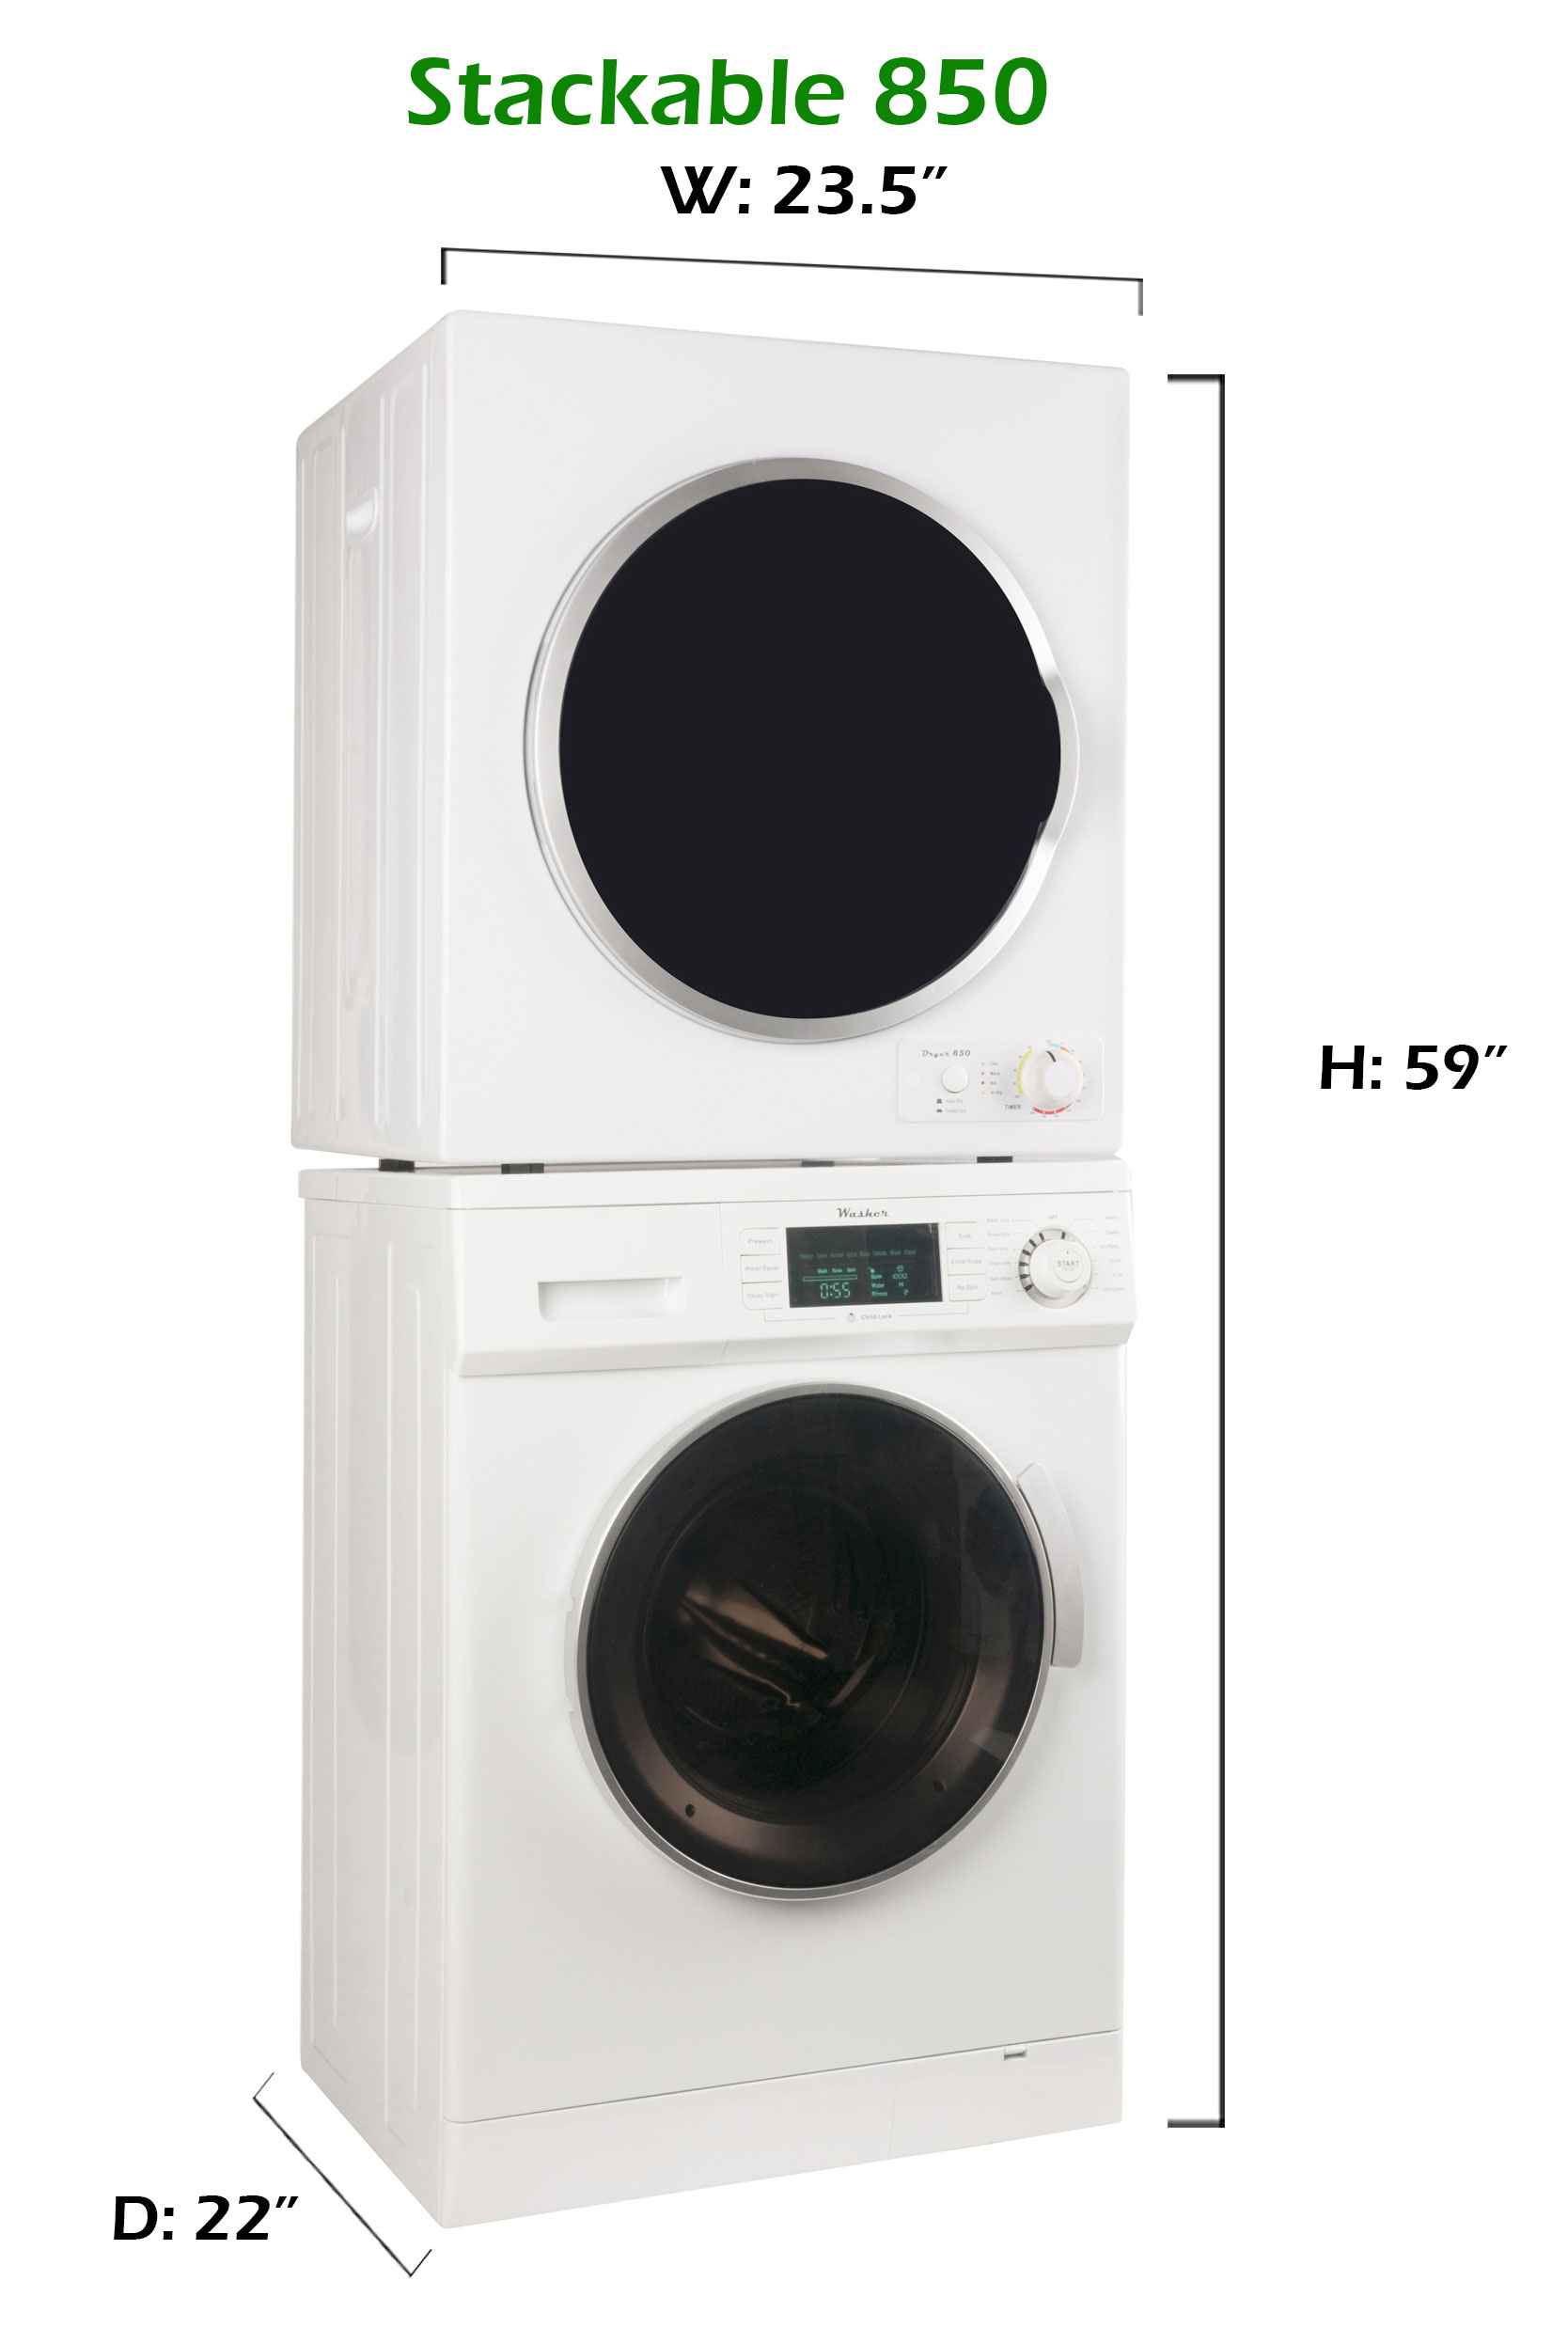 conserv Stackable Washer Dryer Set CW 824 & CD 850 V